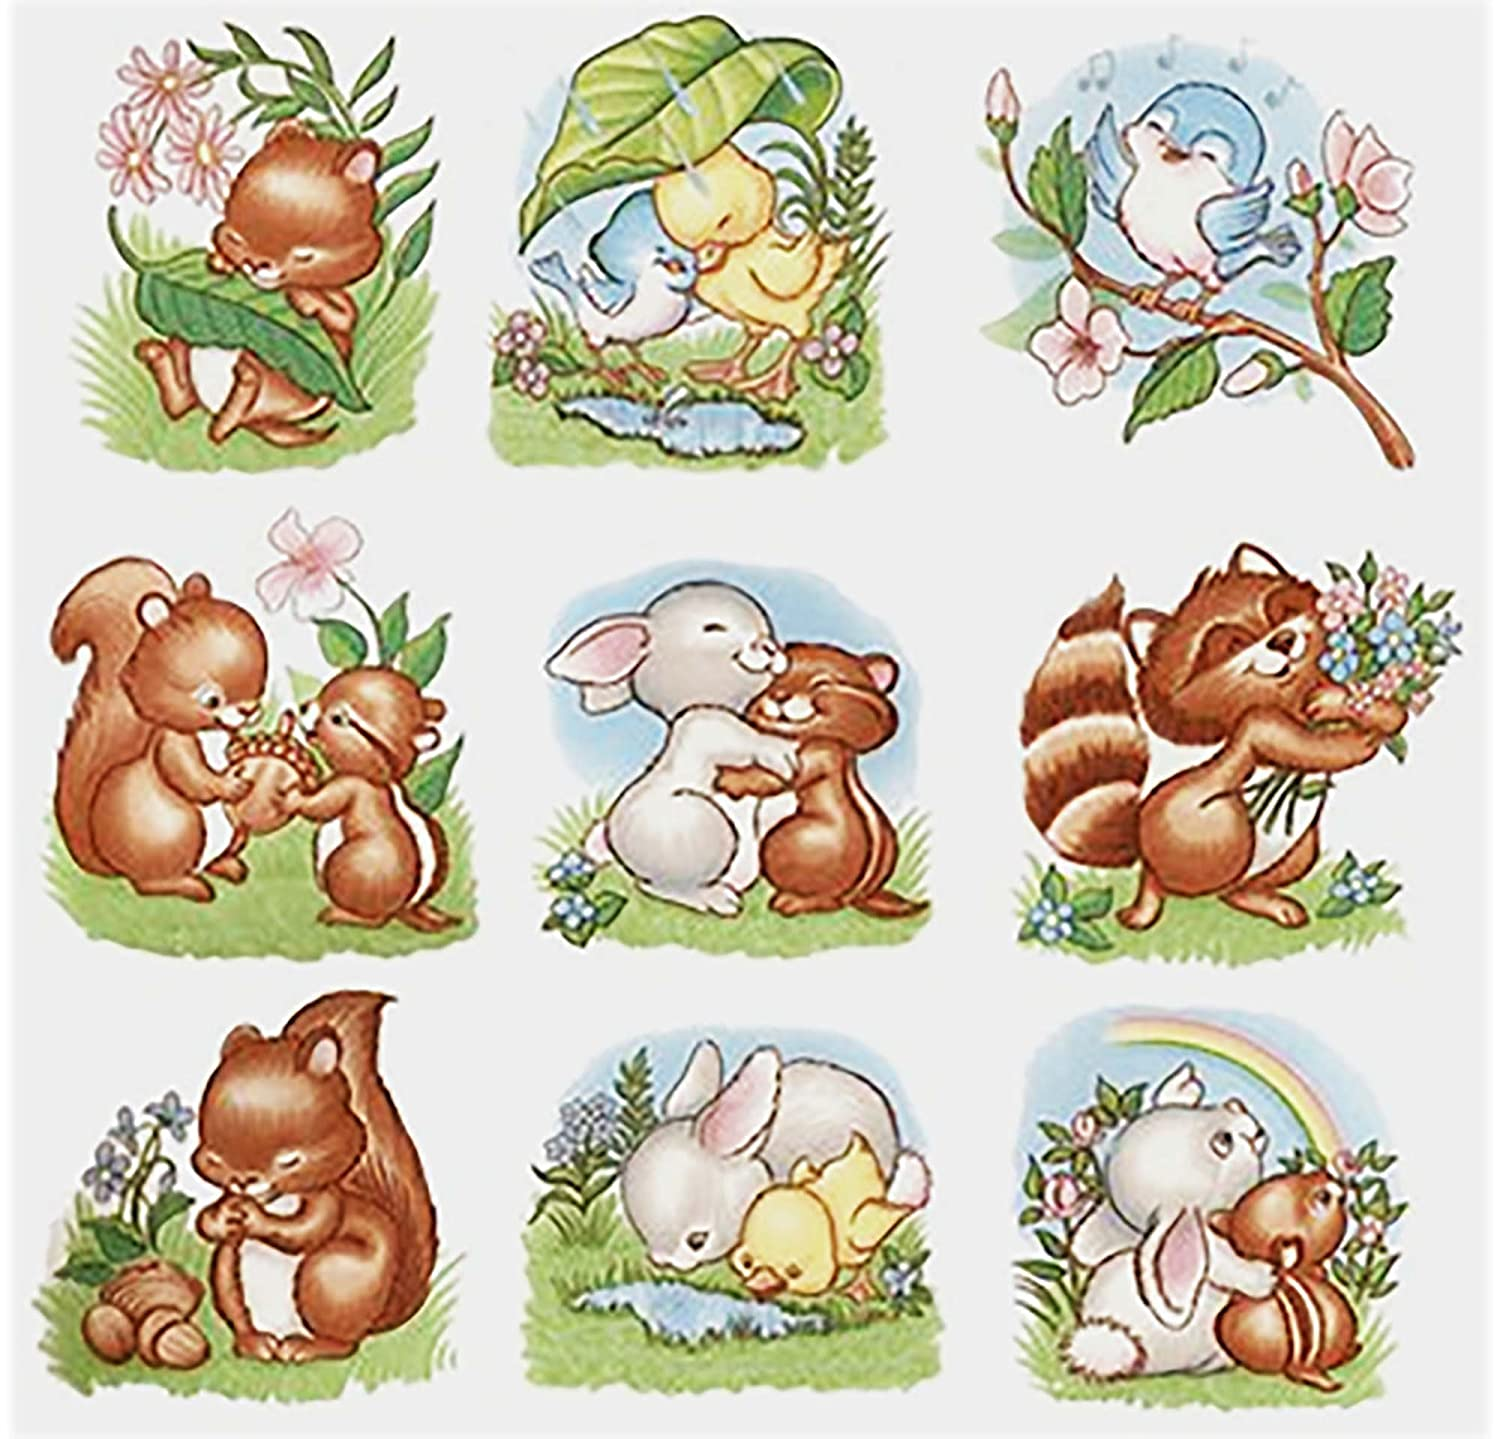 614 Spring Rabbit Squirrel Raccoon Blue Bird Ceramic Decals By The Sheet (Select-A-Size) (53 pcs 1-1/2